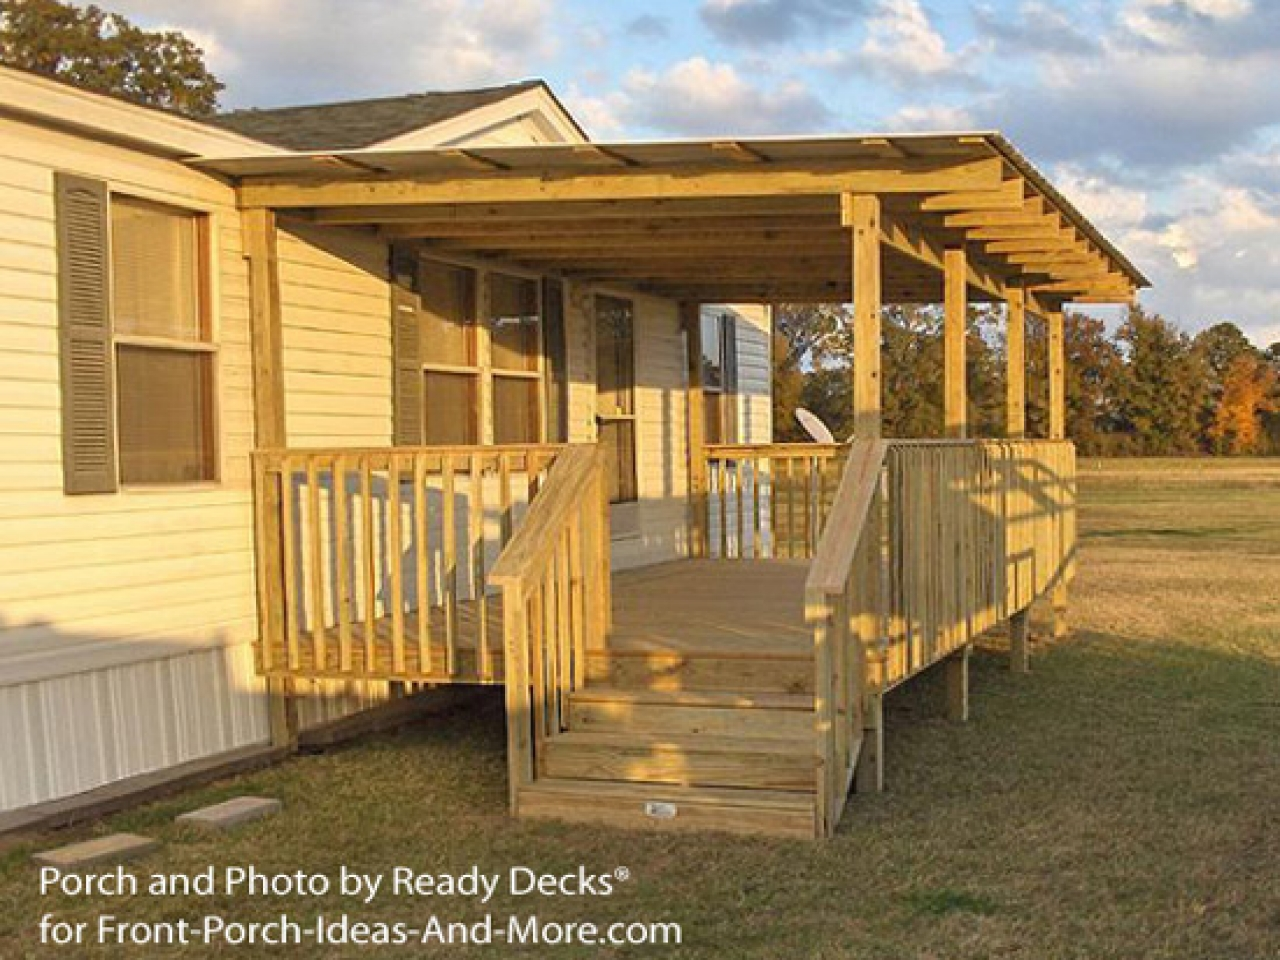 Front Porch Designs for Ranch Homes | Mobile Home Porches | How to Build A Porch on A Mobile Home